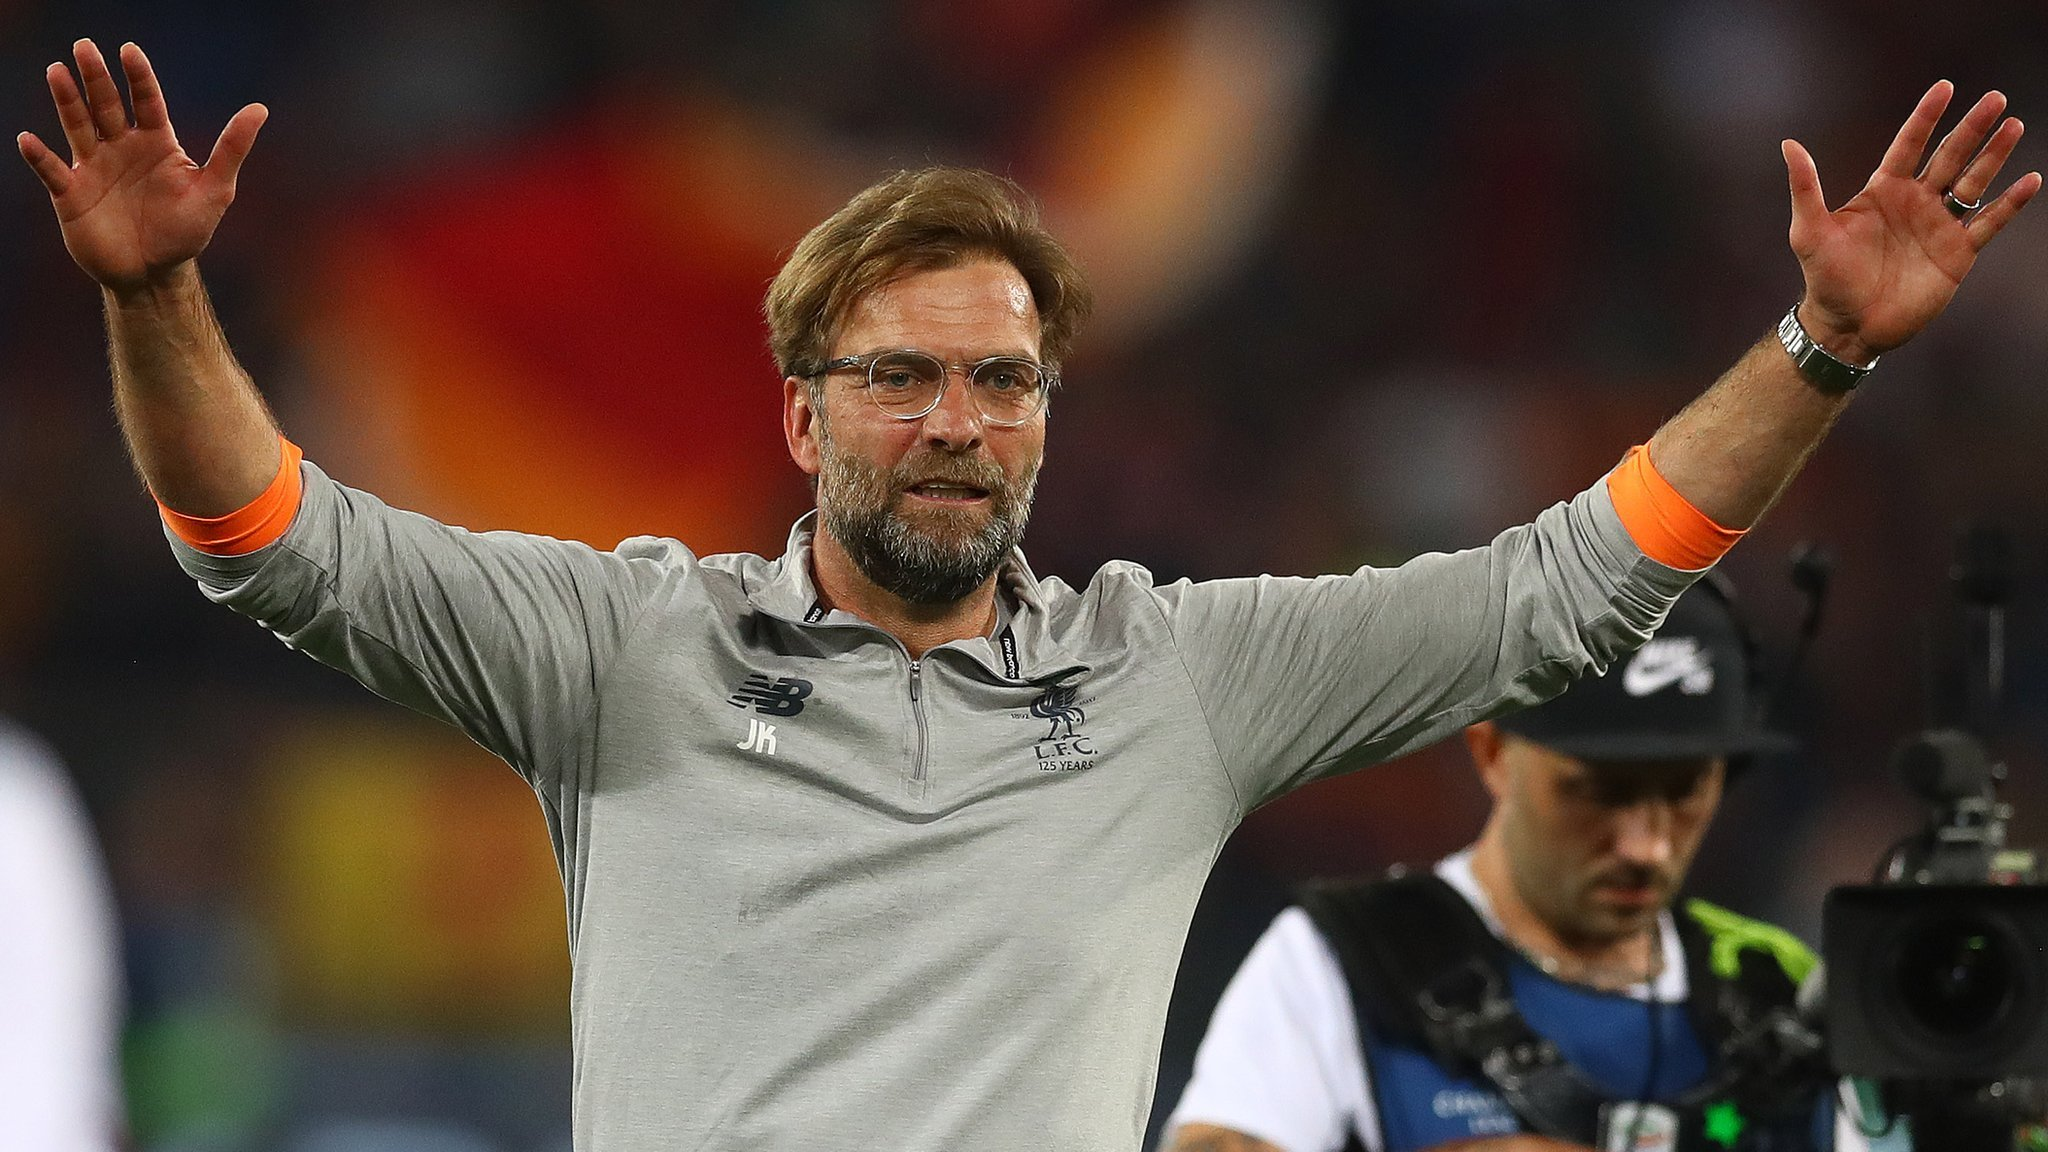 'The pressure is relentless' - Lawro on the psychology of becoming European champions